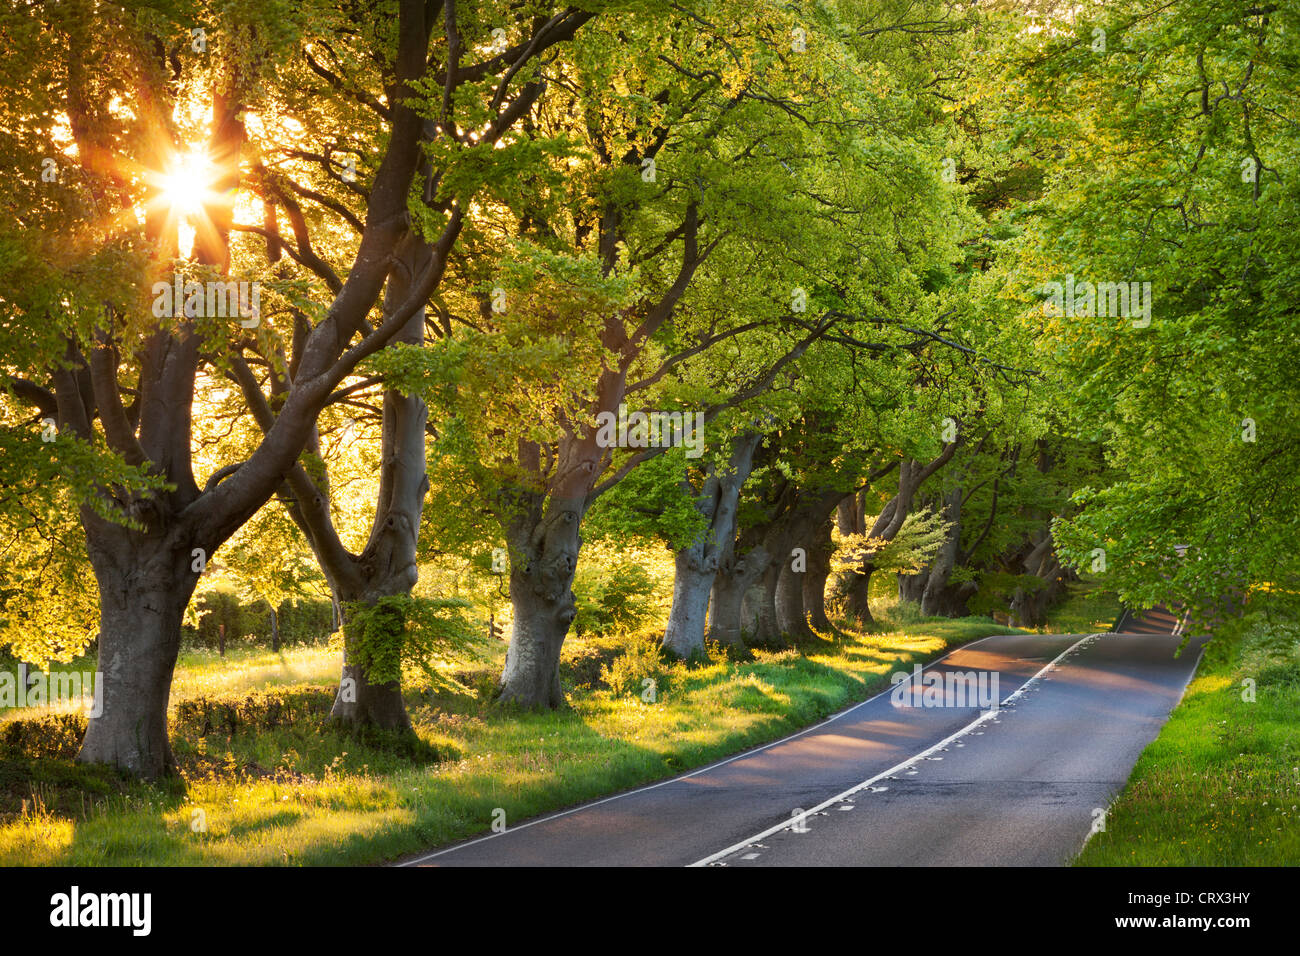 Beech tree lined road in evening sunshine, Wimborne, Dorset, England. Spring (May) 2012. - Stock Image